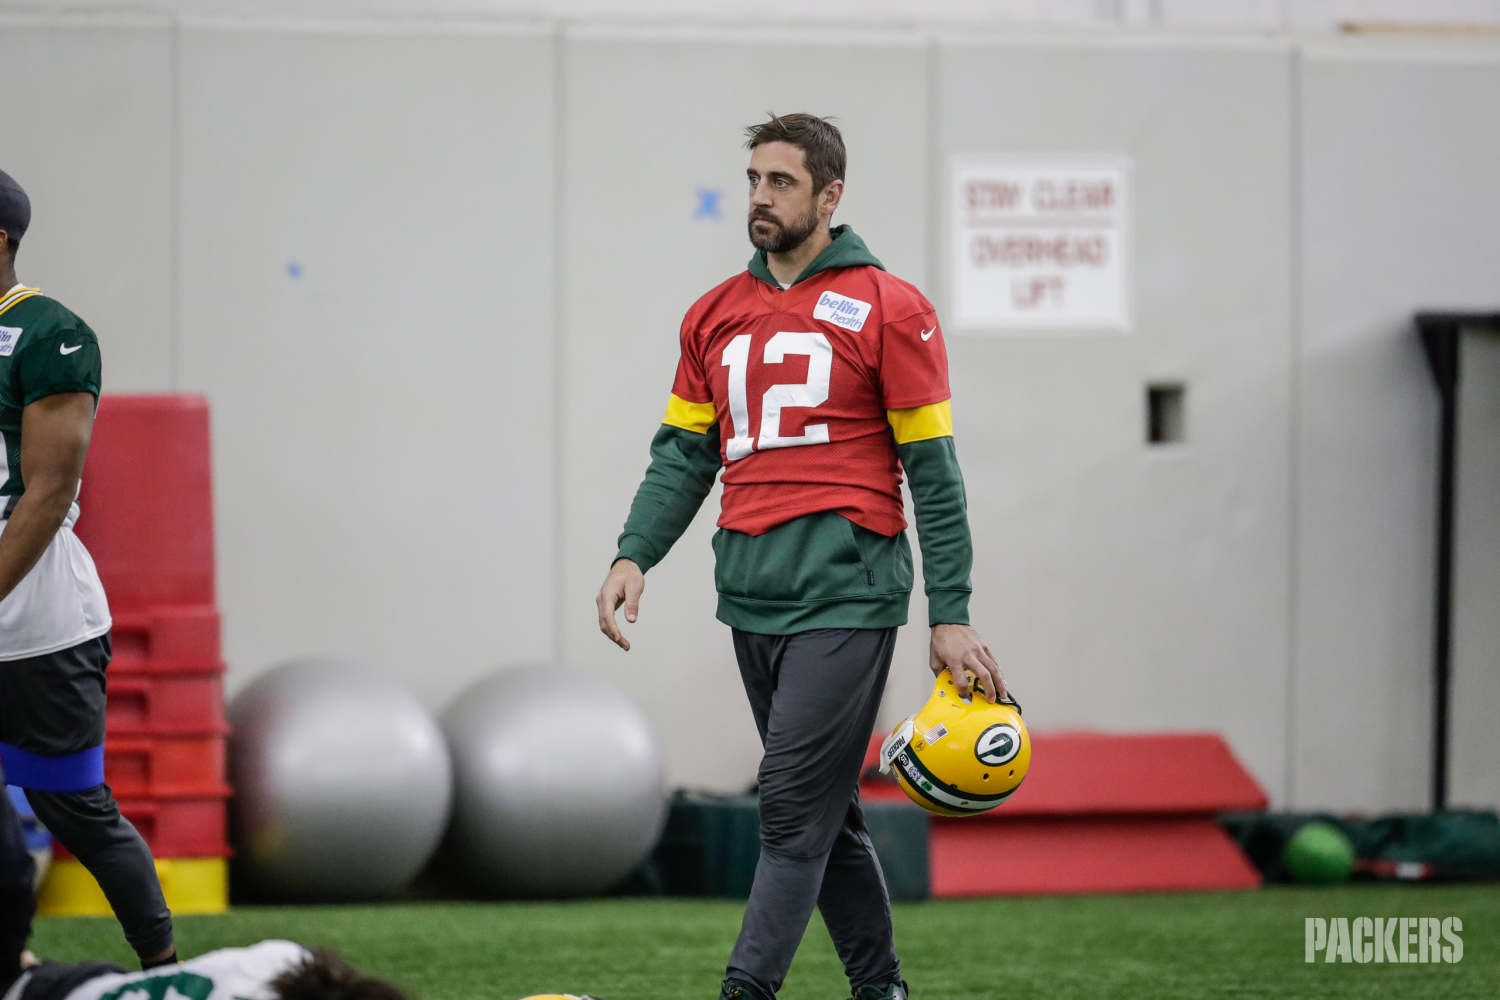 Pin By Kimberly On Aaron Rodgers Green Bay Aaron Rodgers Man Crush